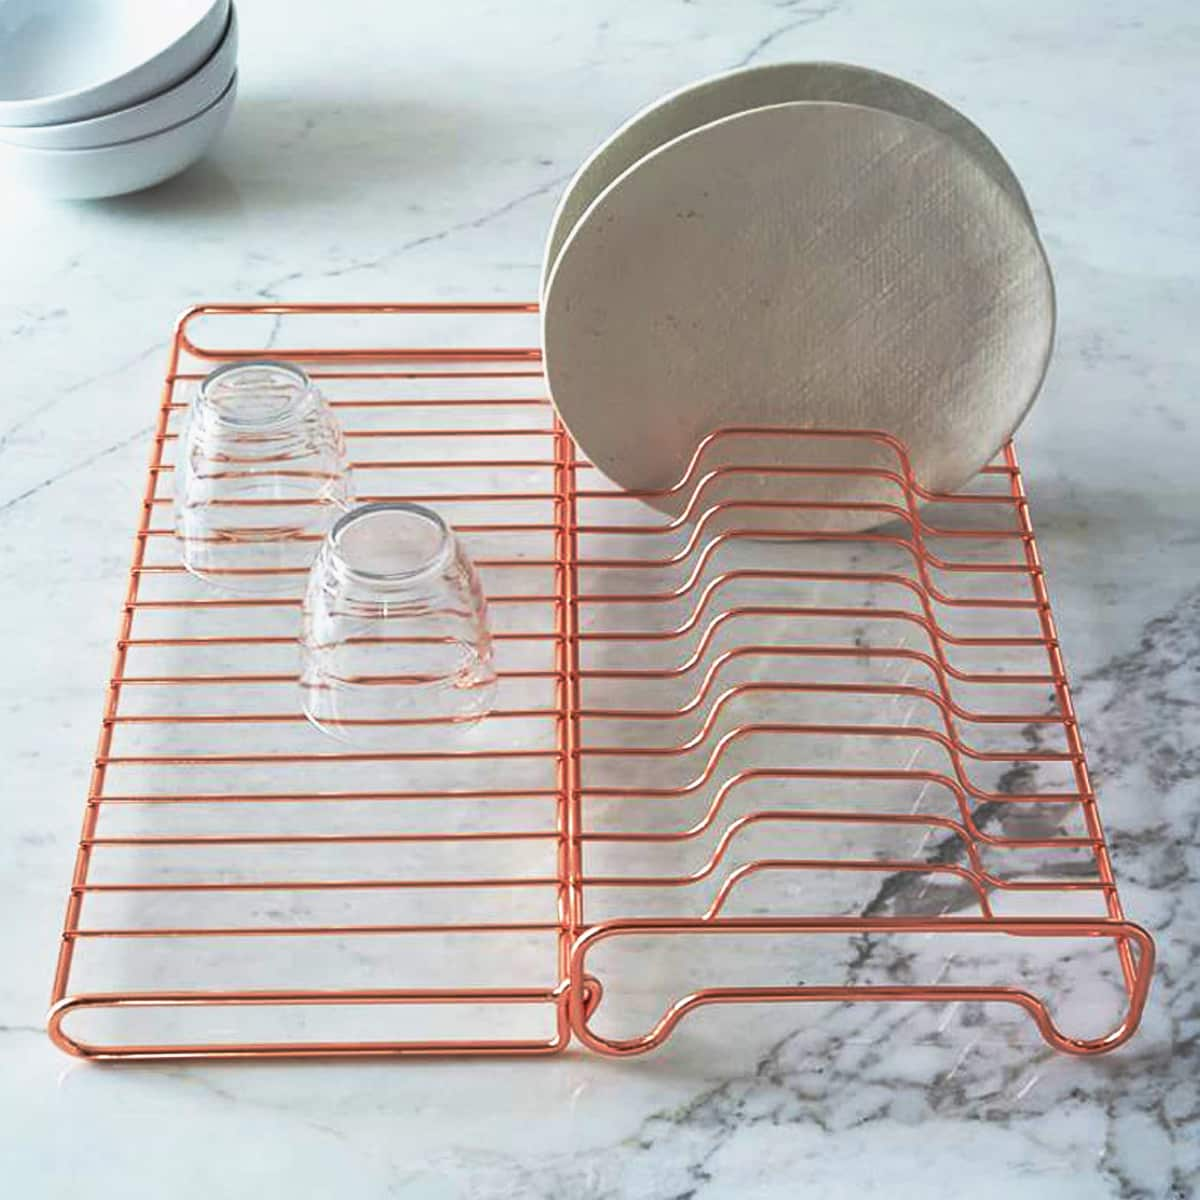 10 Dish Drying Racks That Are Better than a Tea Towel: gallery image 8